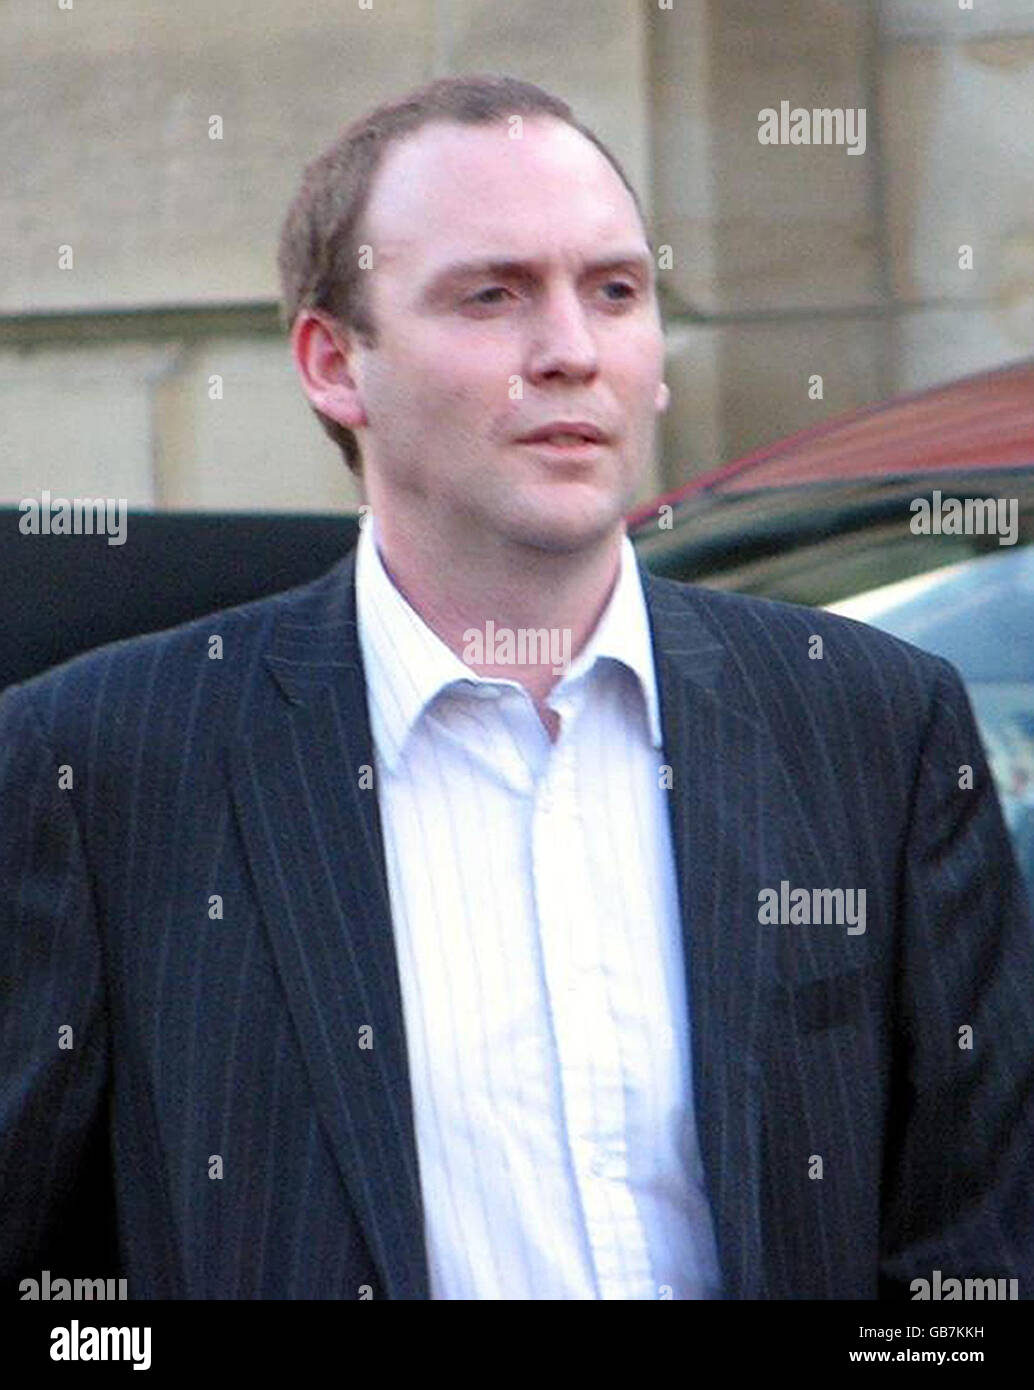 Man admits impersonating barrister - Stock Image